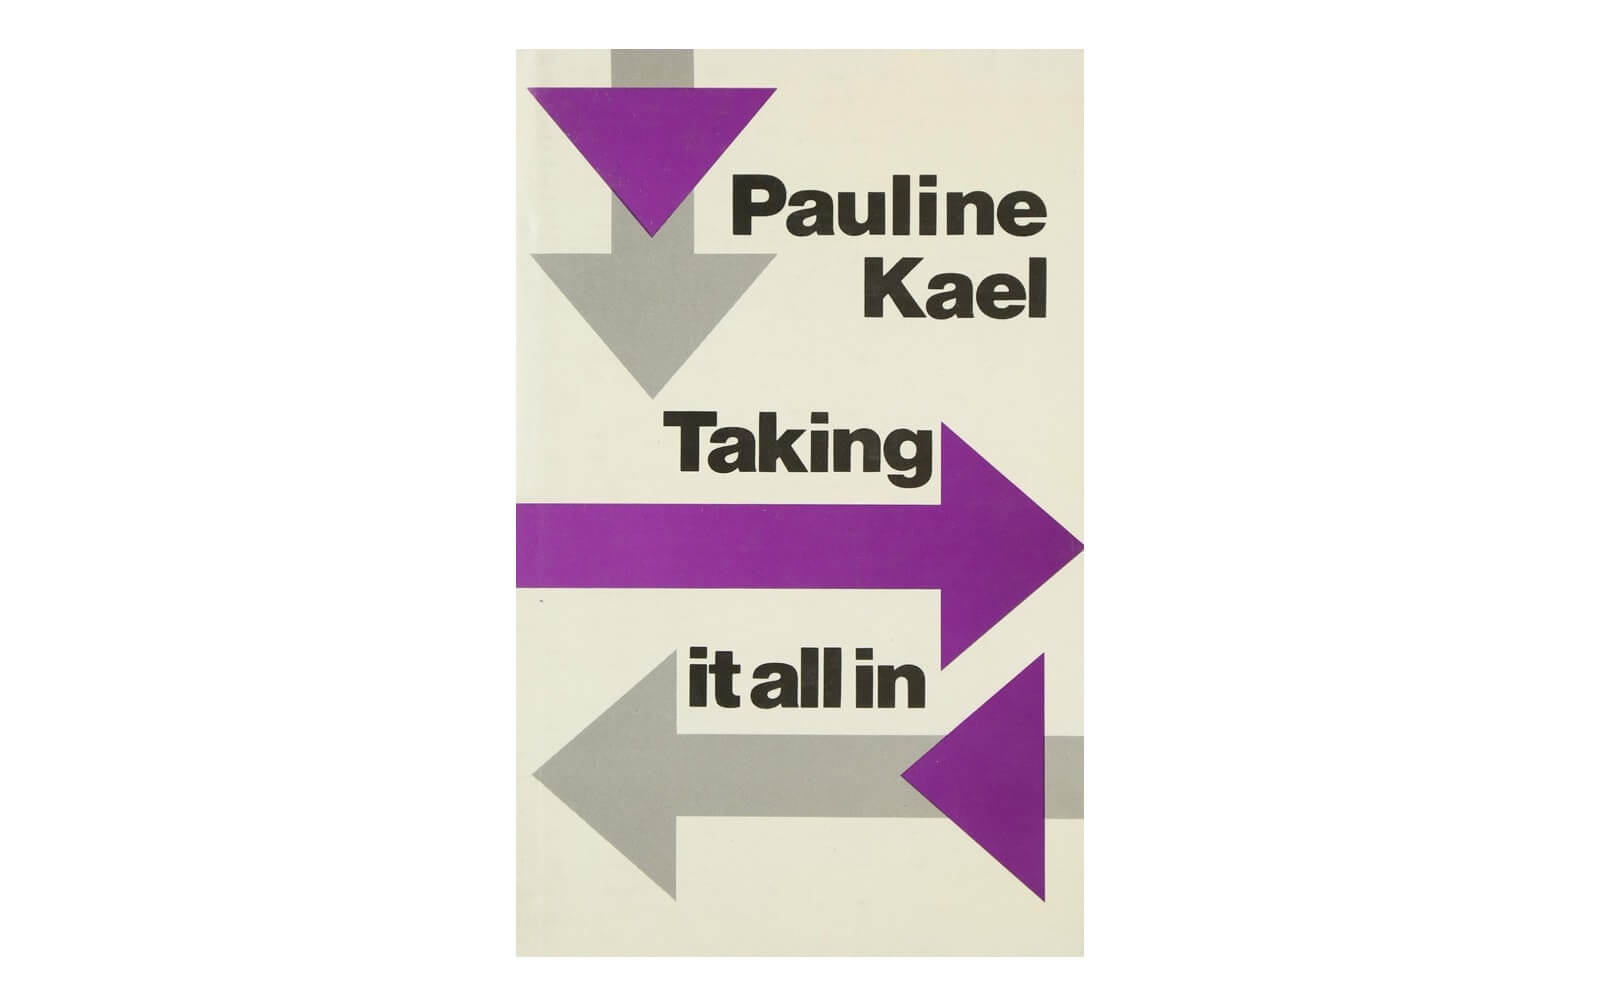 Best Filmmaking Books - Best Screenwriting Books - Taking It All In - Pauline Kael - StudioBinder